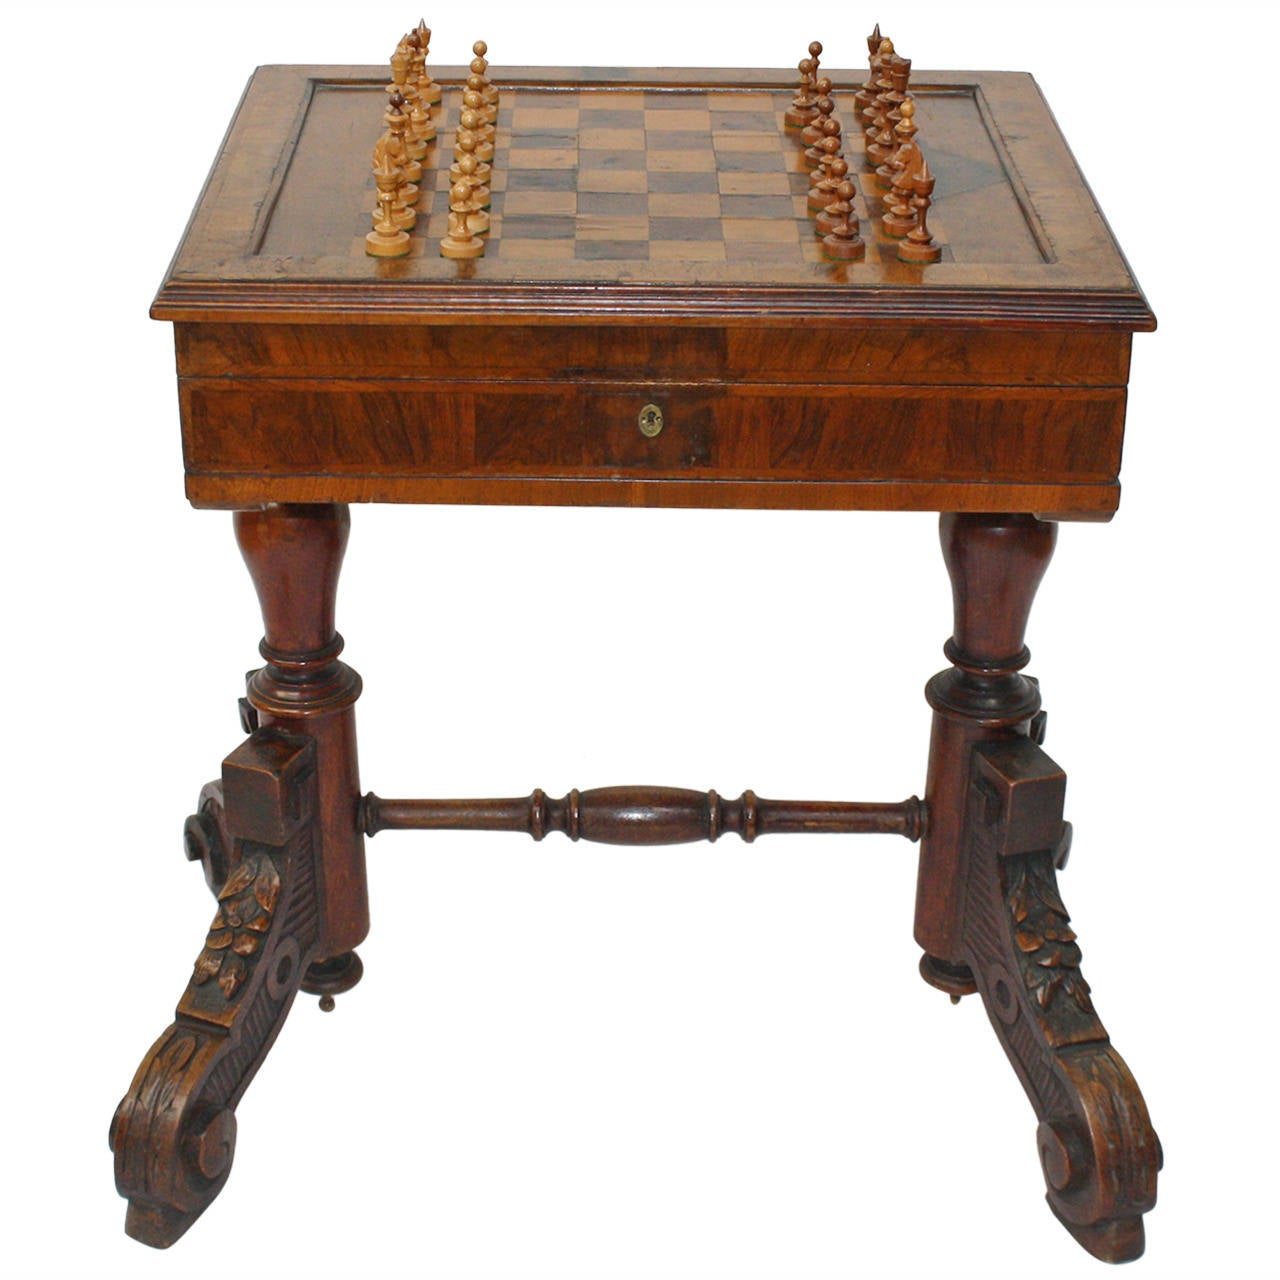 19th Century, Historicism Play Table For Chess And Backgammon 1